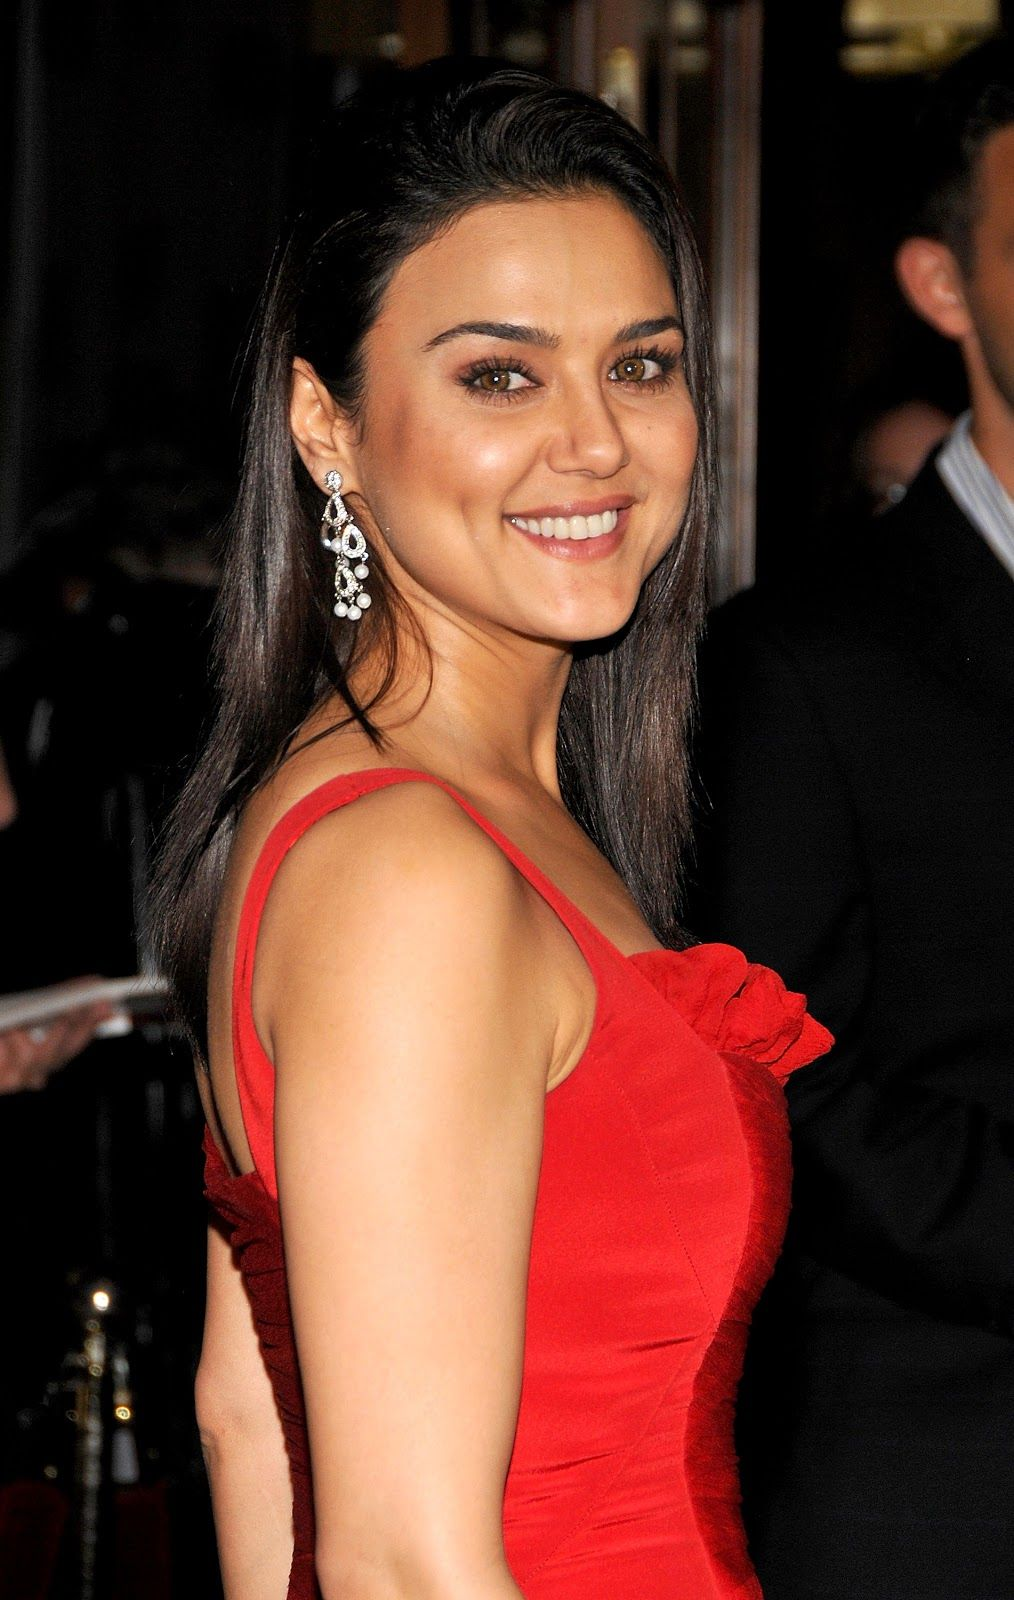 bollywood actress gorgeous dimple girl preity zinta full hd images